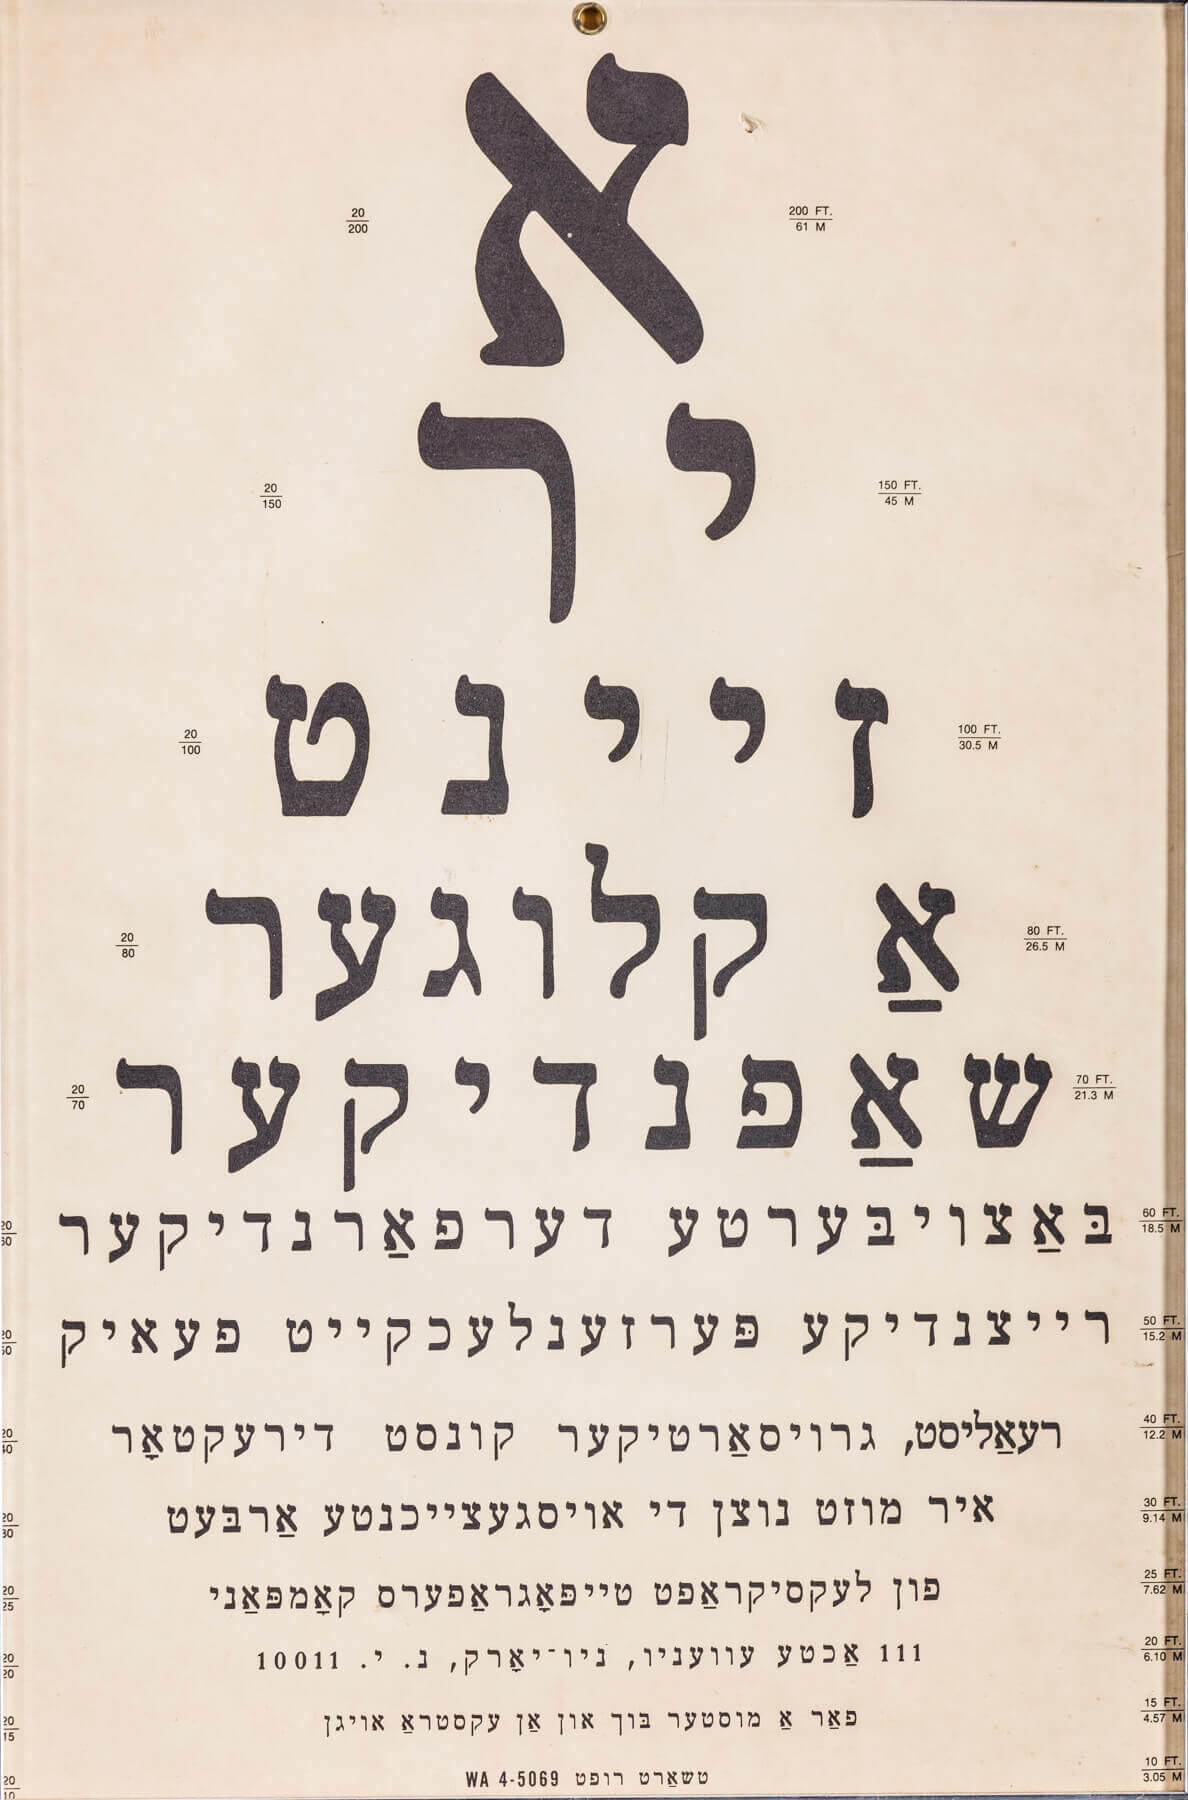 134. A YIDDISH EYE CHART